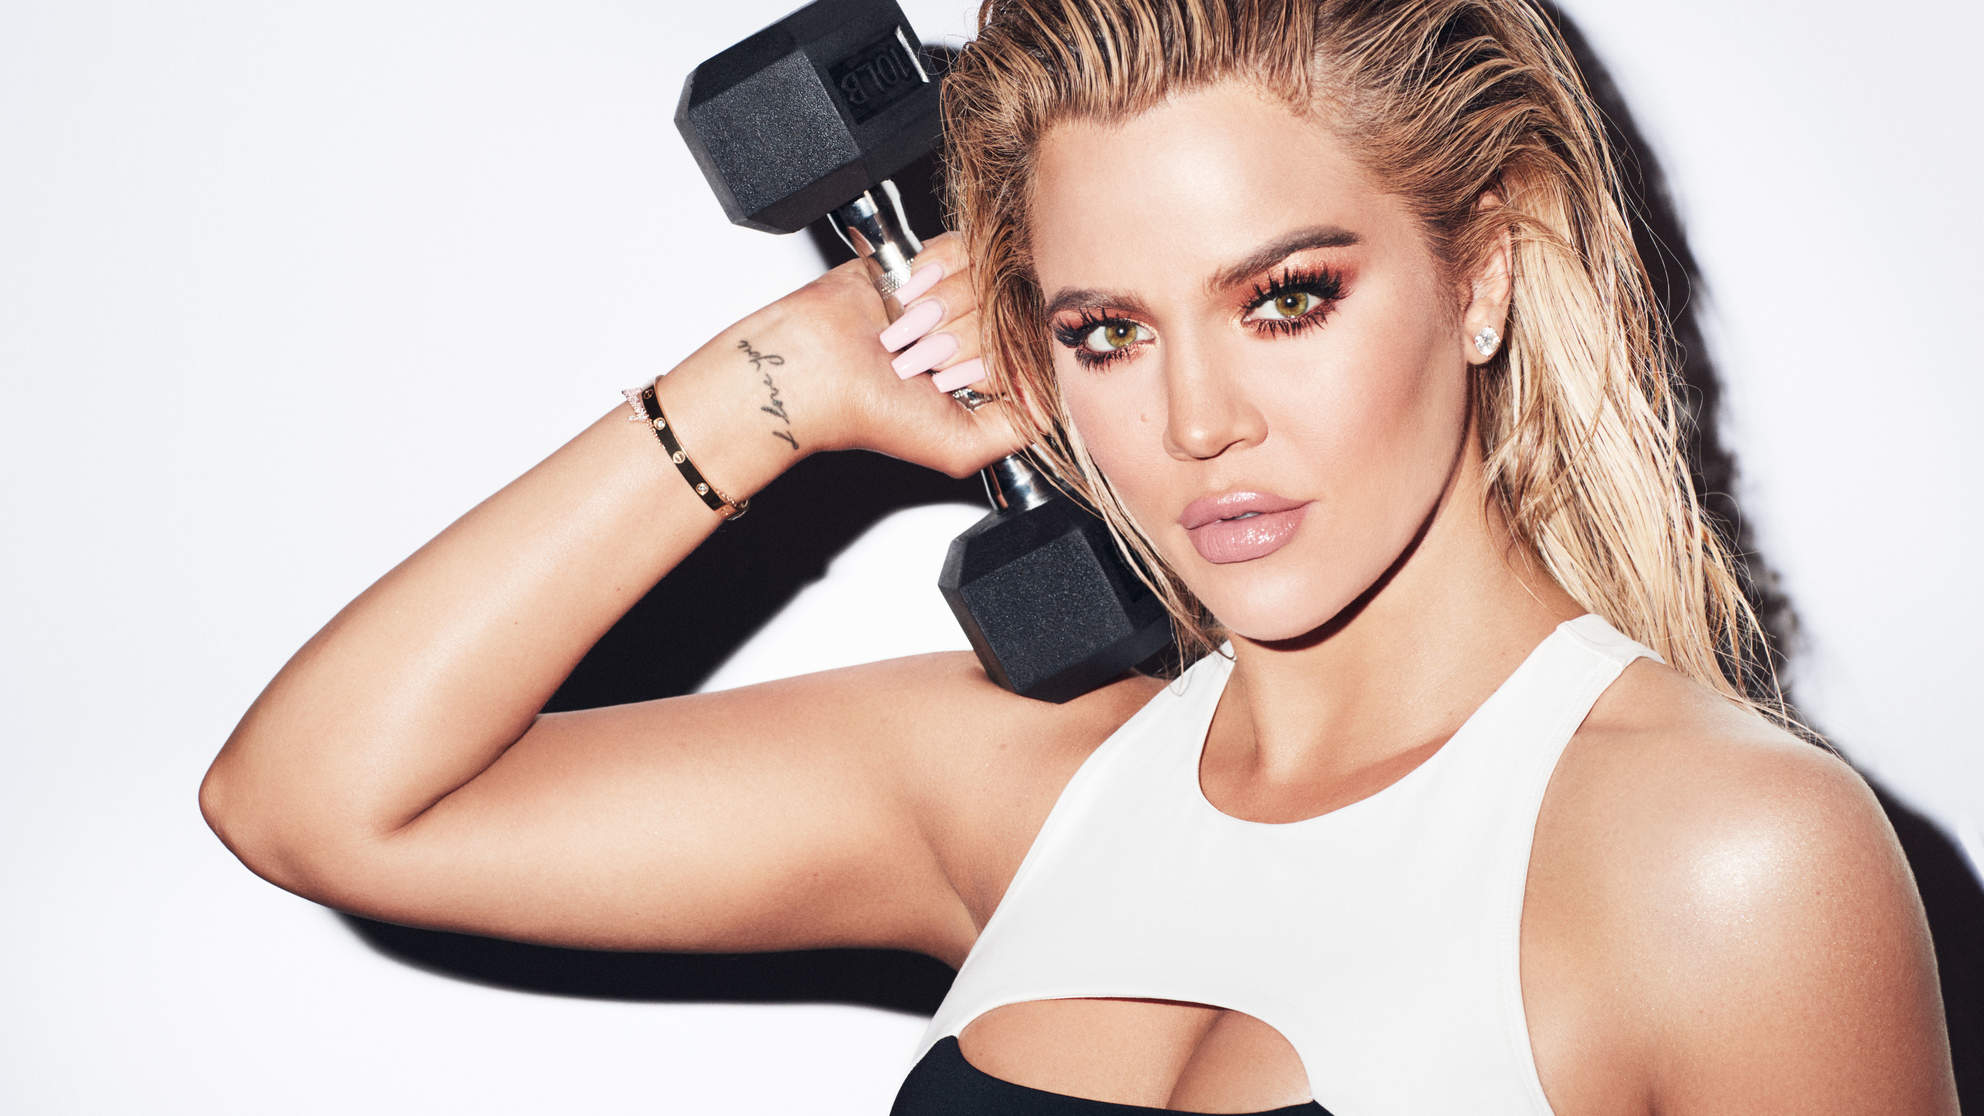 Khloe Kardashian responds to Cavs' Tristan Thompson cheating rumors